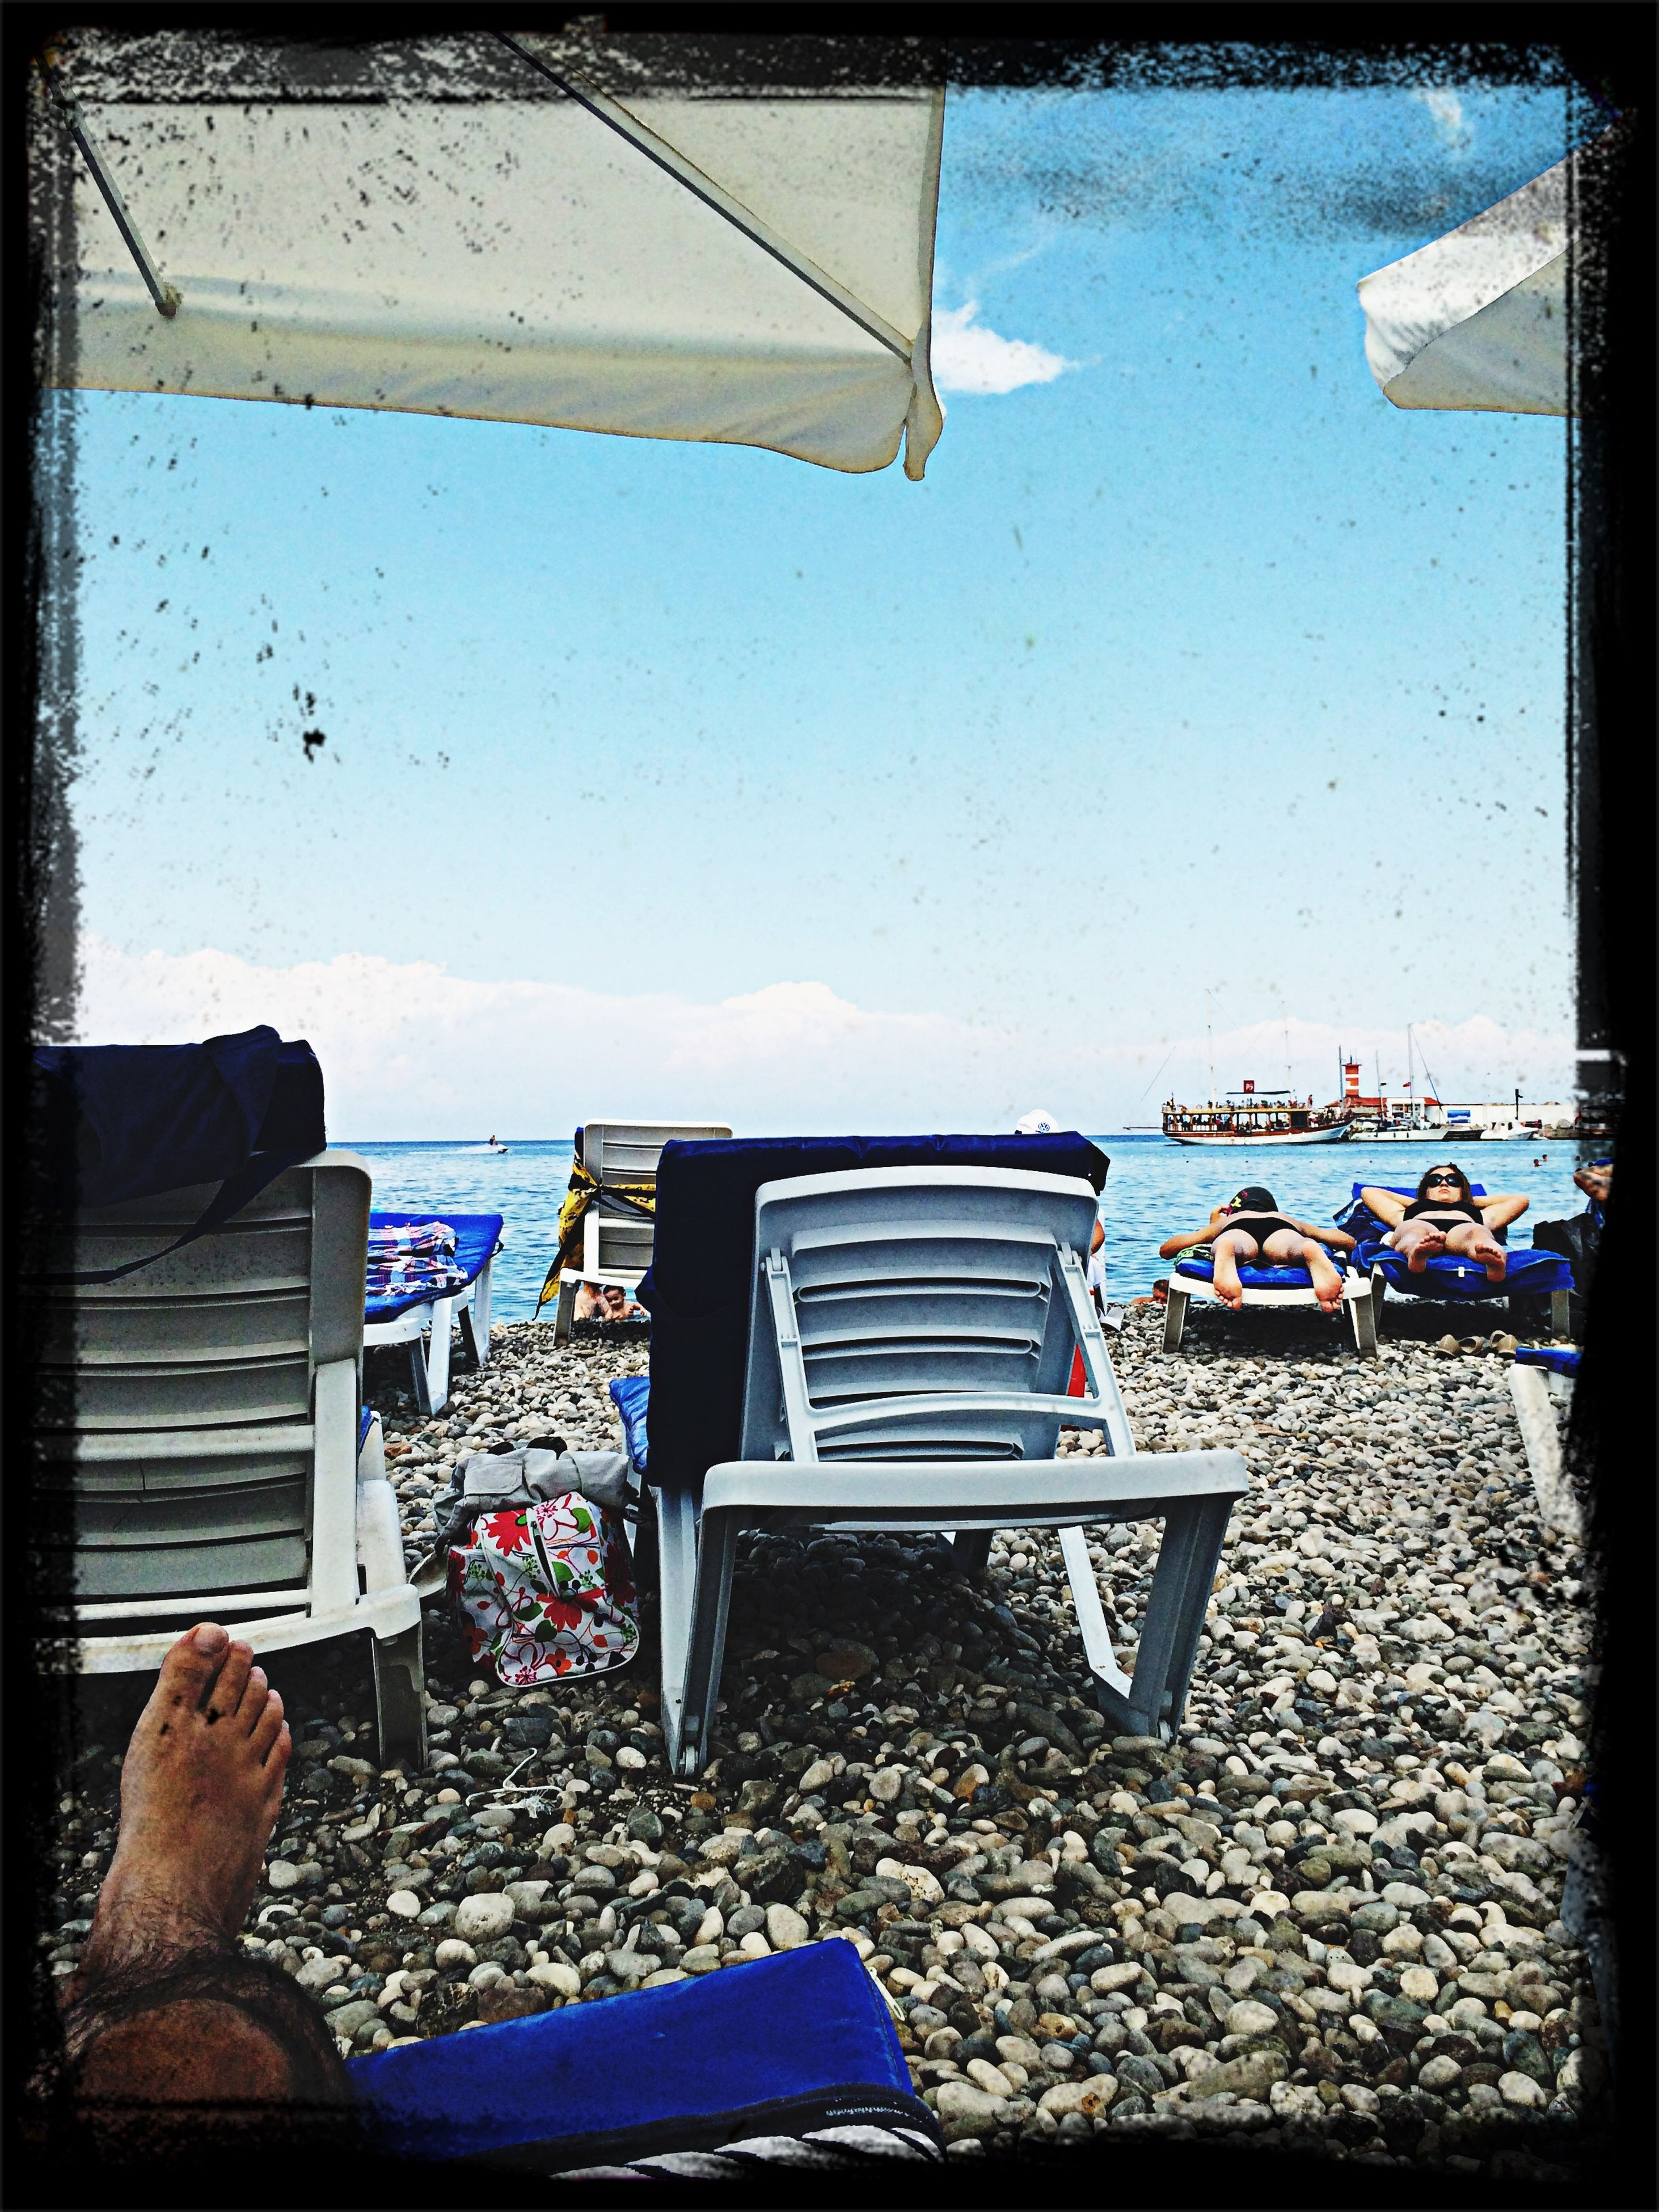 sea, beach, transfer print, lifestyles, leisure activity, men, auto post production filter, relaxation, person, sitting, water, sky, horizon over water, chair, vacations, beach umbrella, clear sky, shore